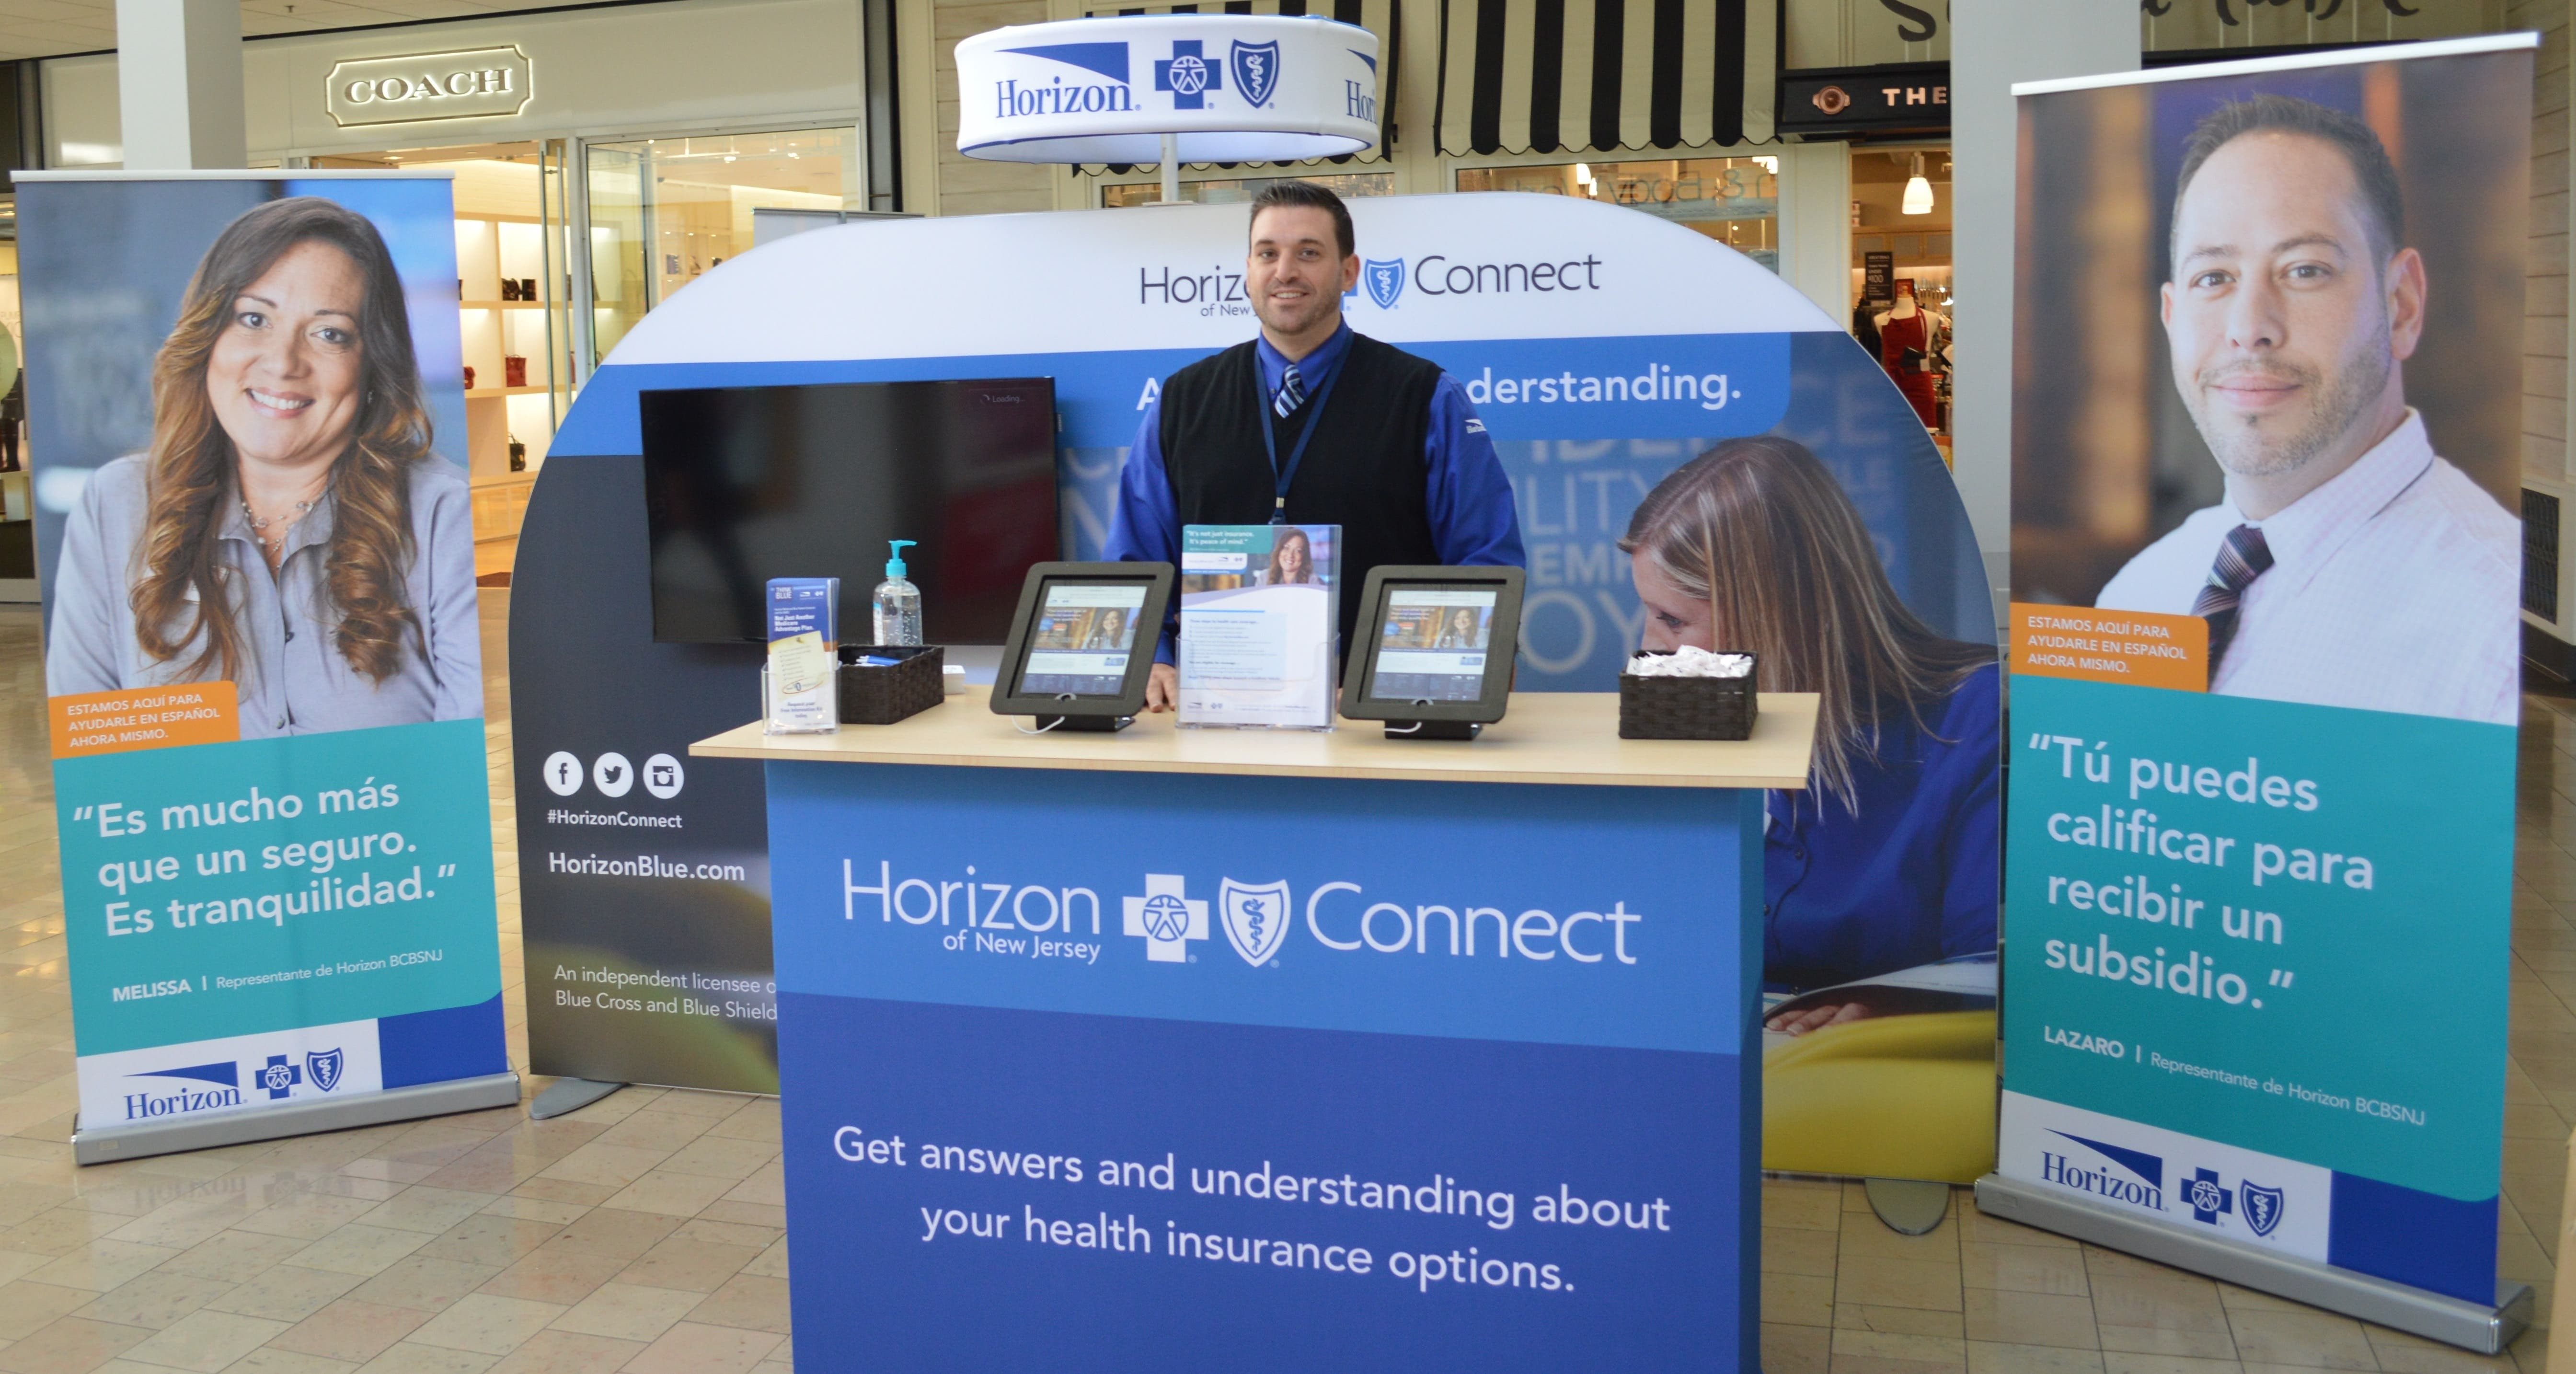 Now at a shopping mall near you: Answers to your health insurance